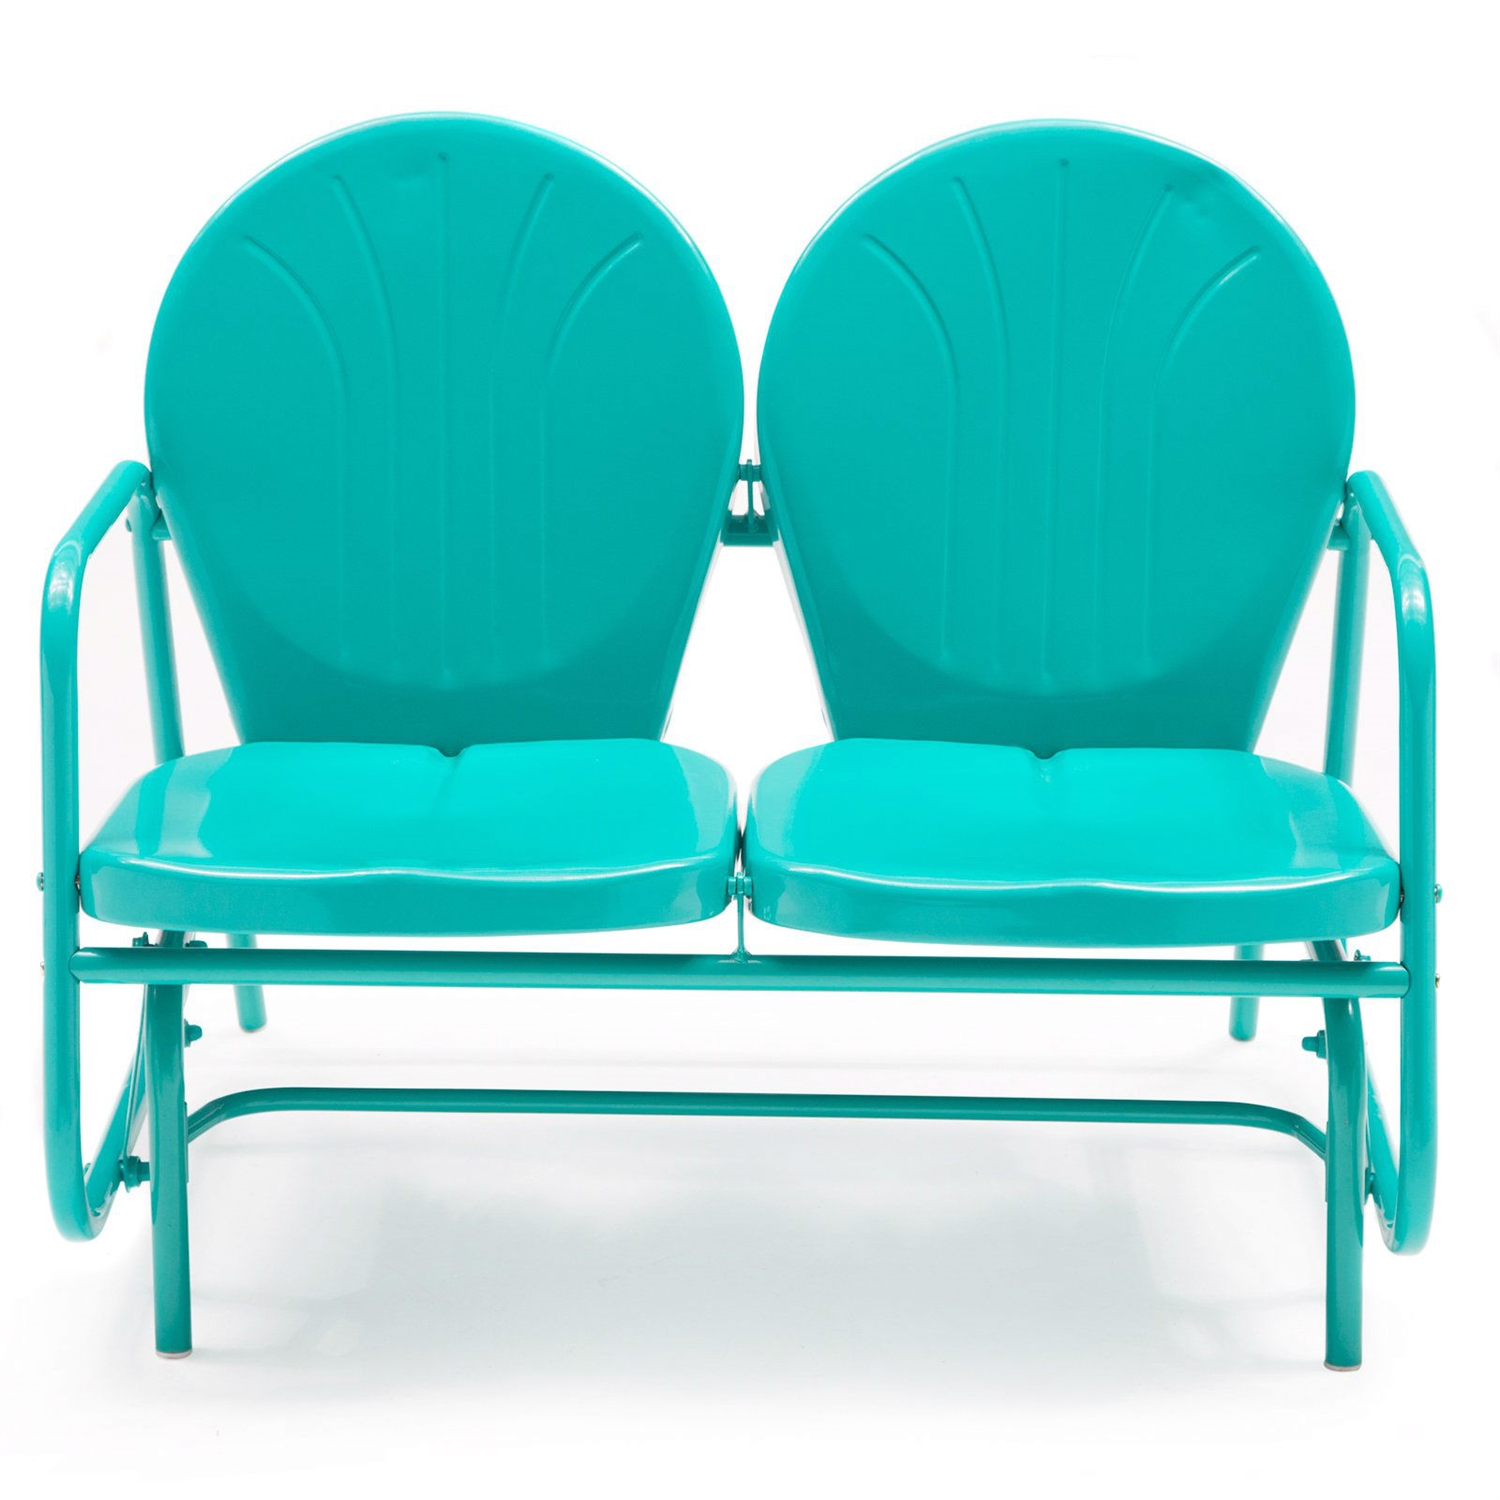 Aqua Blue Loveseat Glider Chairs